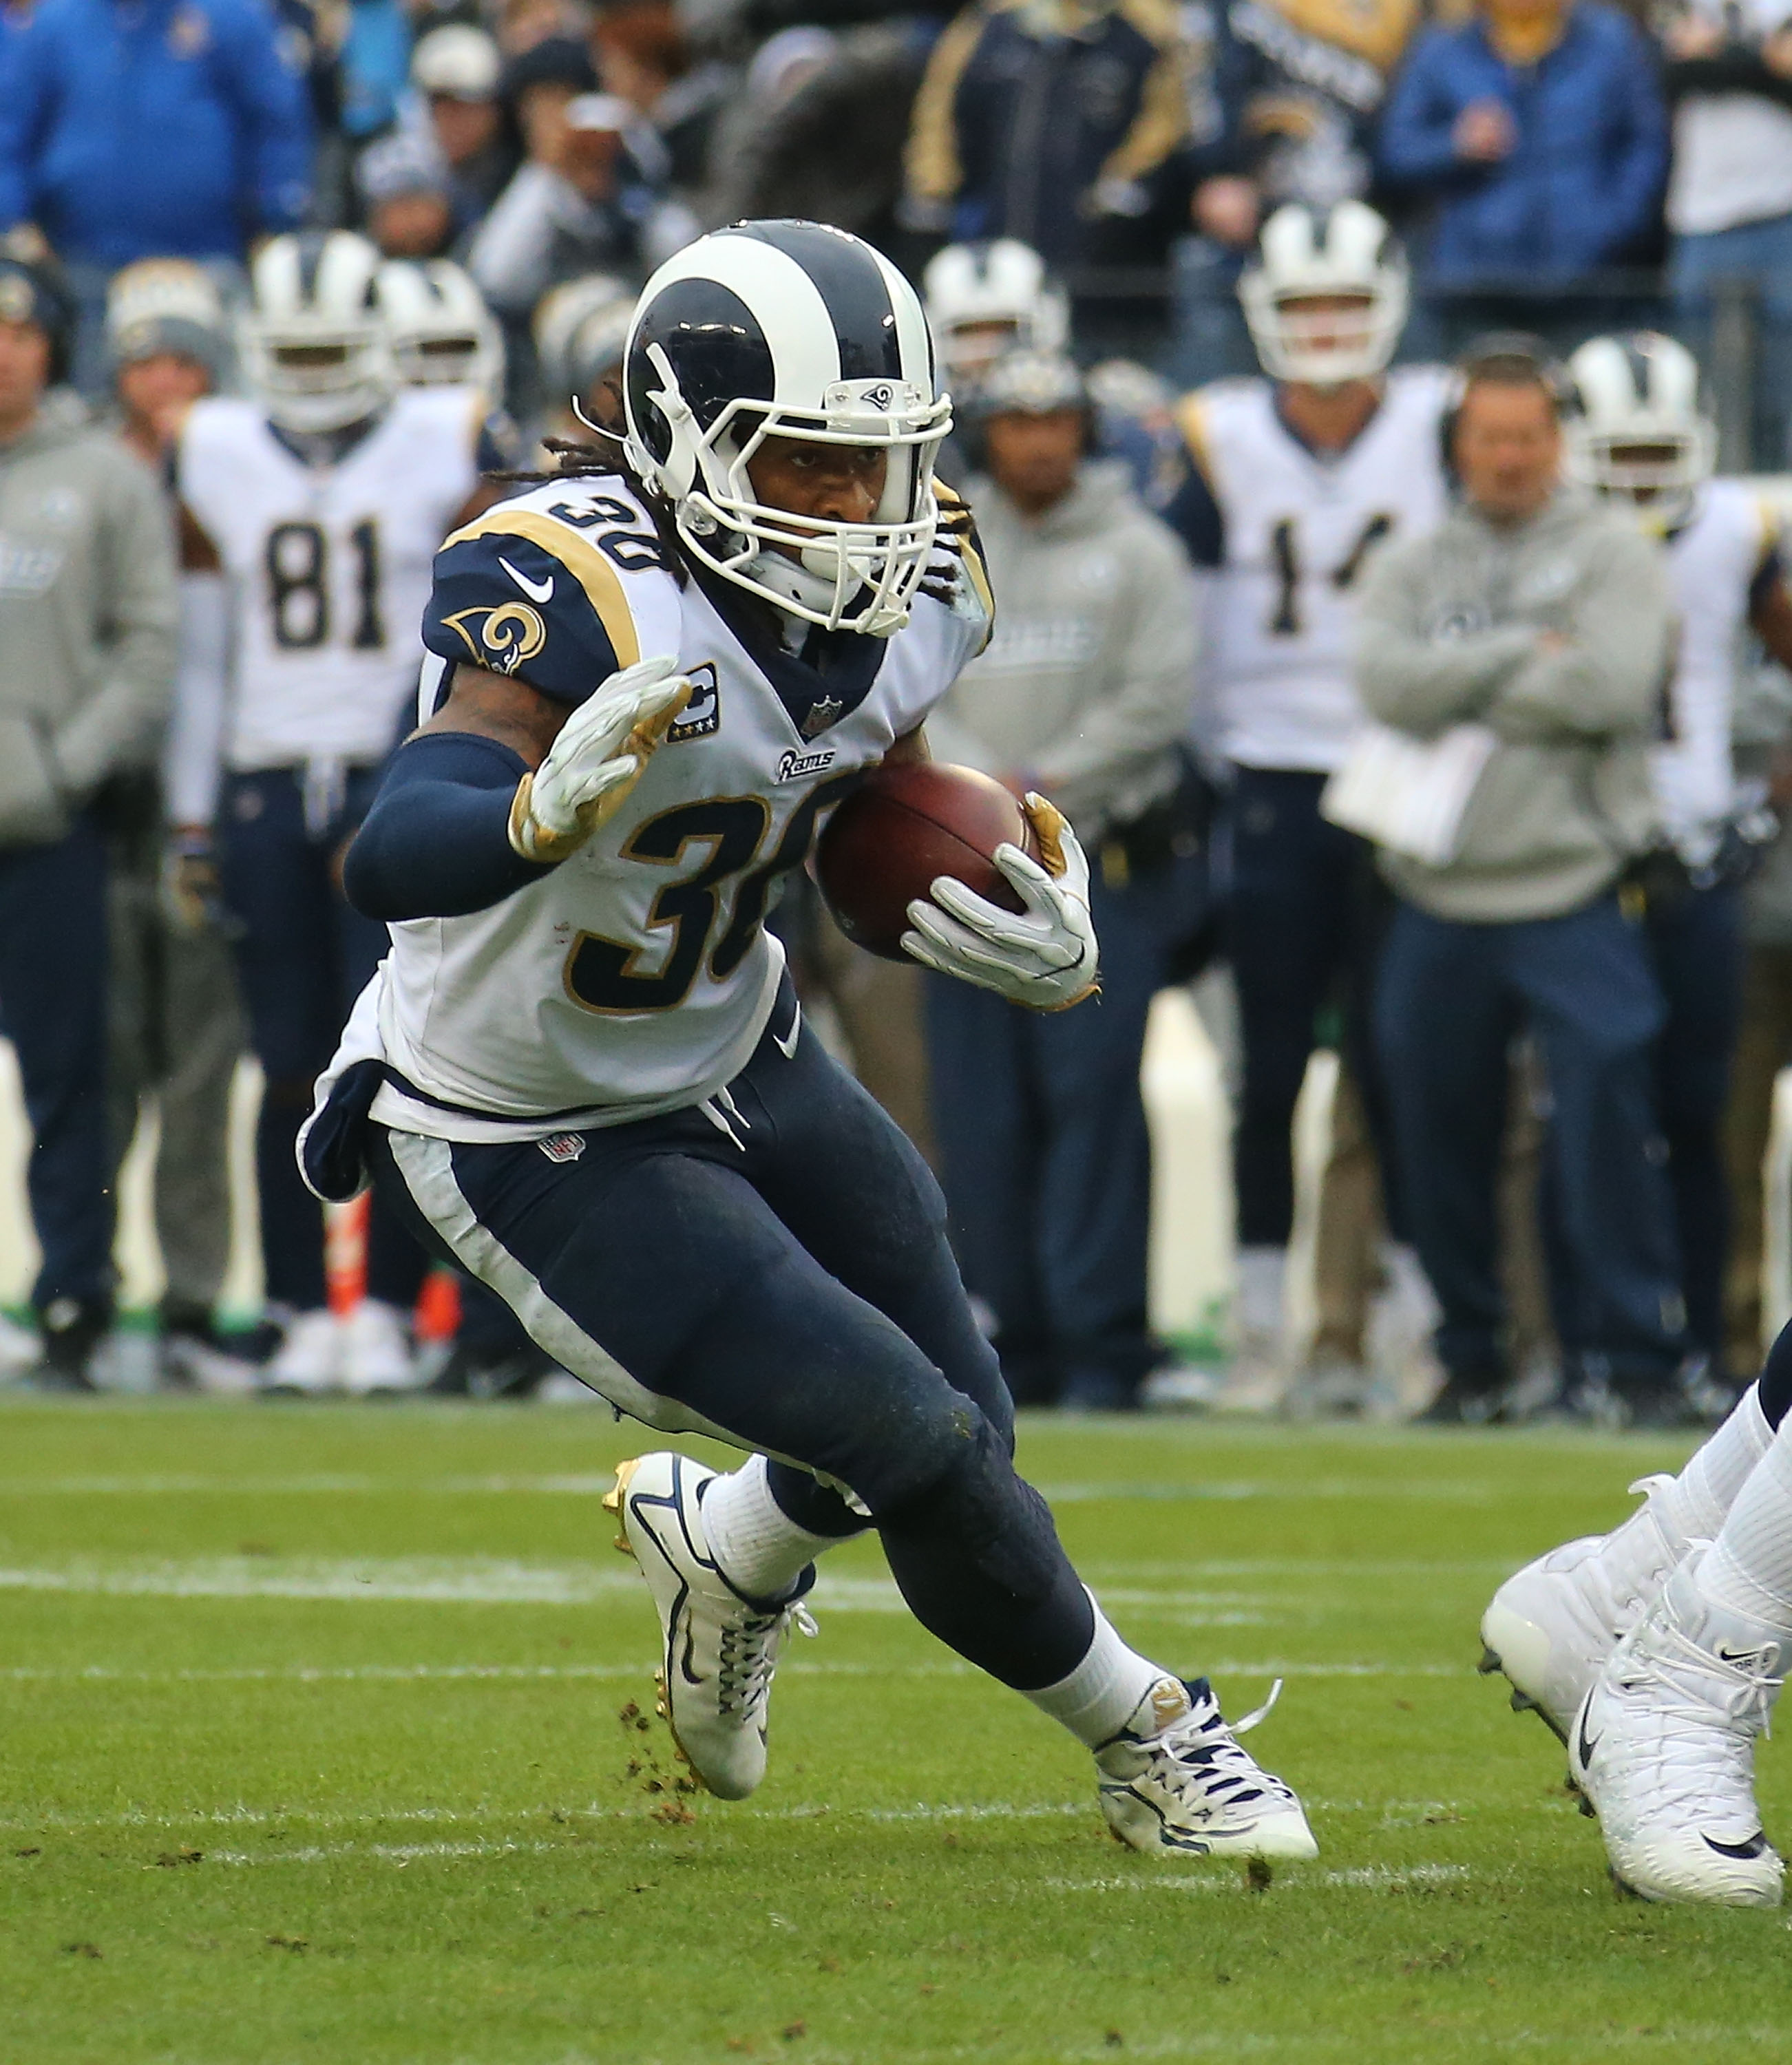 Los Angeles Rams RB runs against the Tennessee Titans in Week 16